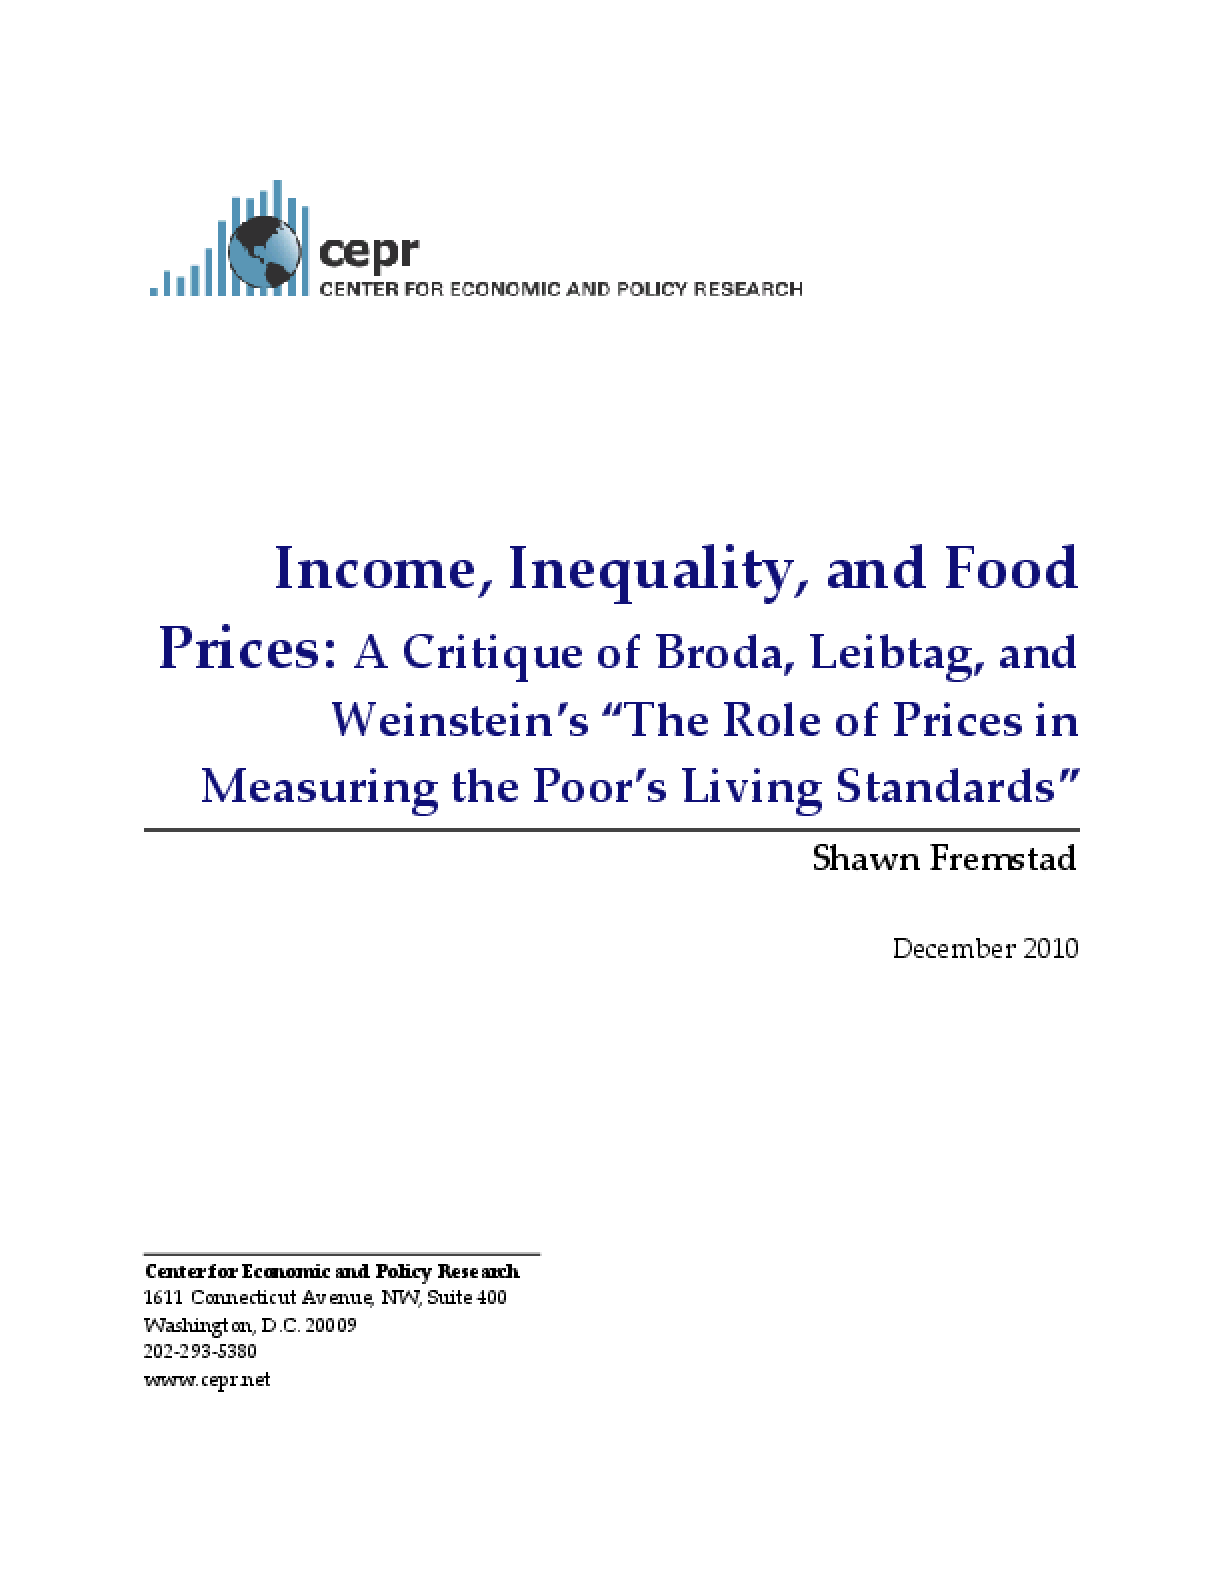 "Income, Inequality, and Food Prices: A Critique of Broda, Leibtag, and Weinstein's ""The Role of Prices in Measuring the Poor's Living Standards"""